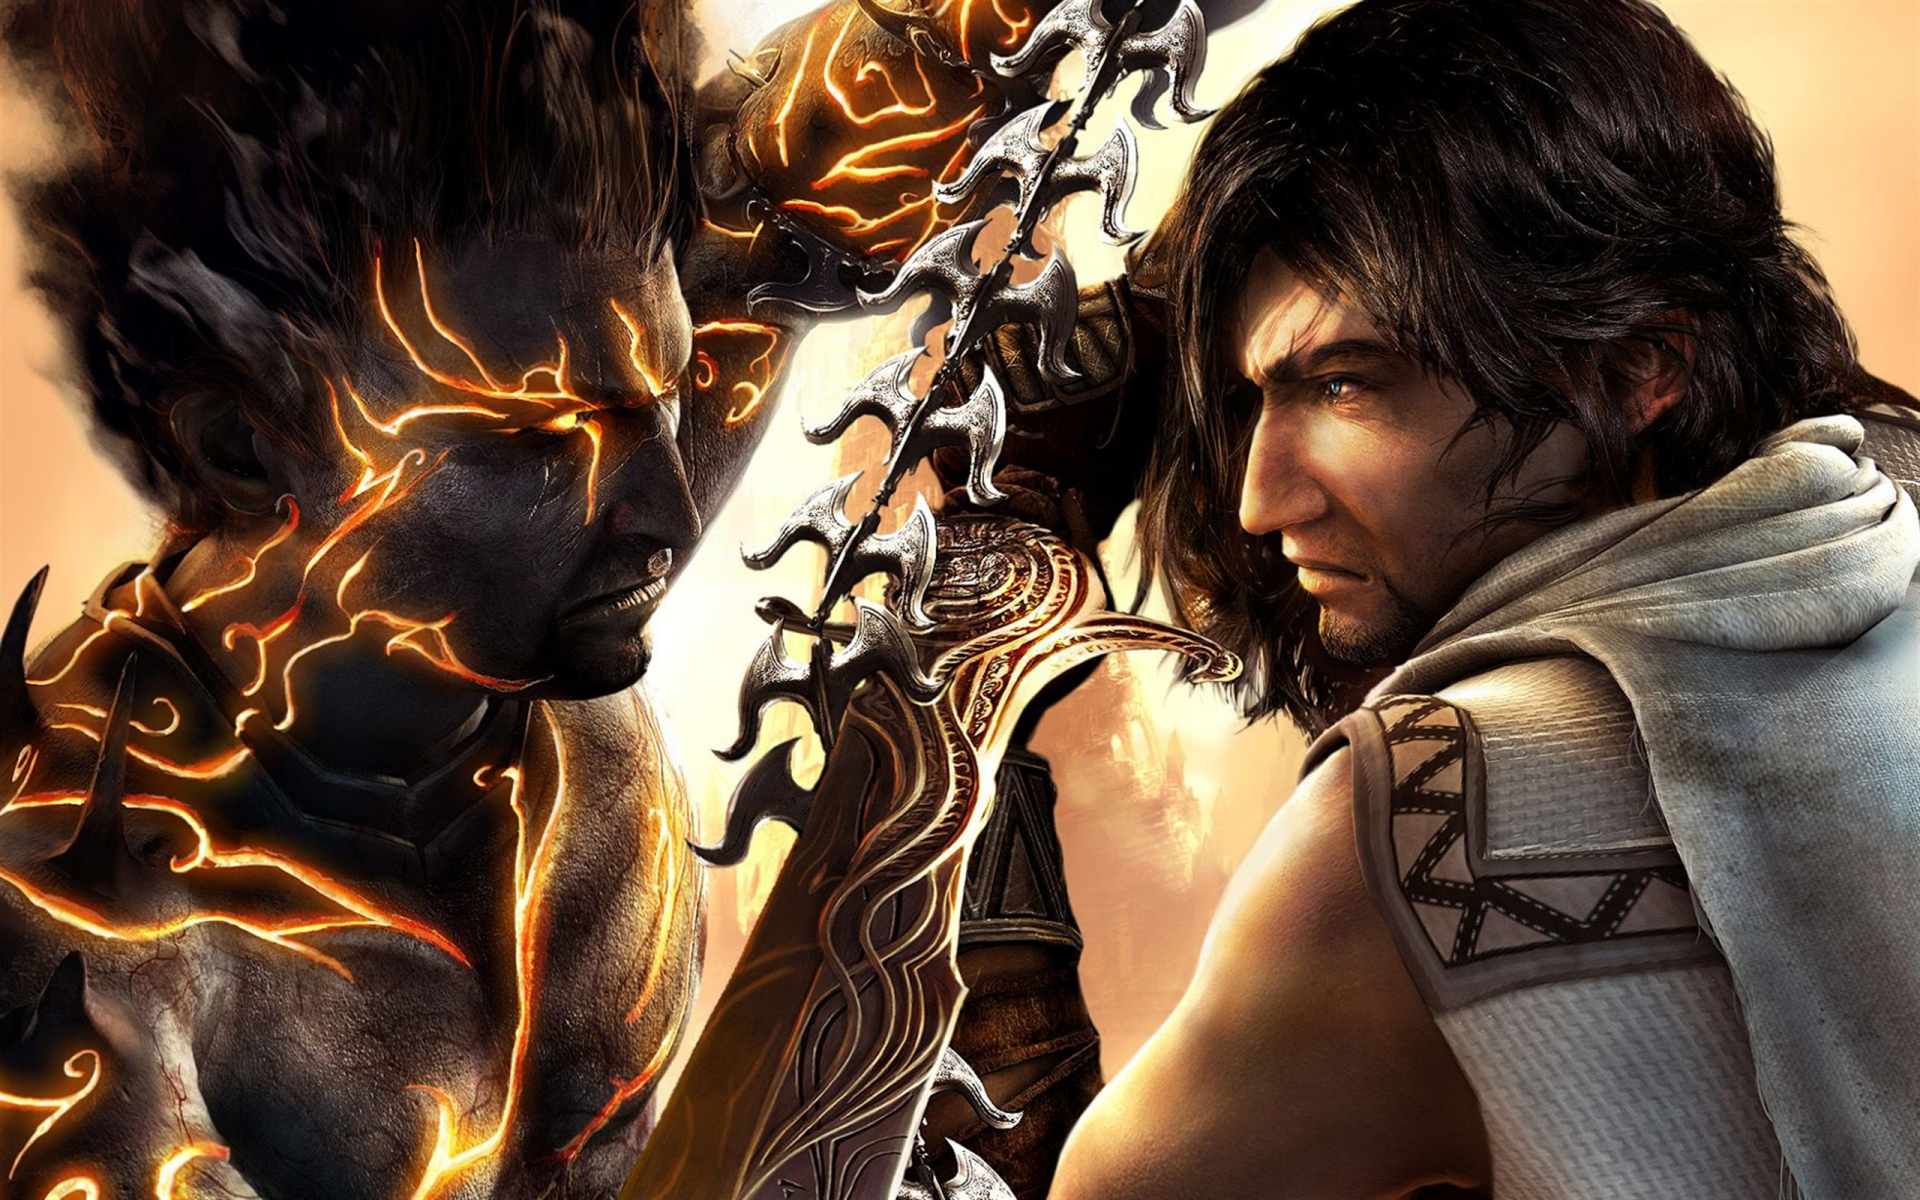 Арт к игре Prince of Persia: The Two Thrones